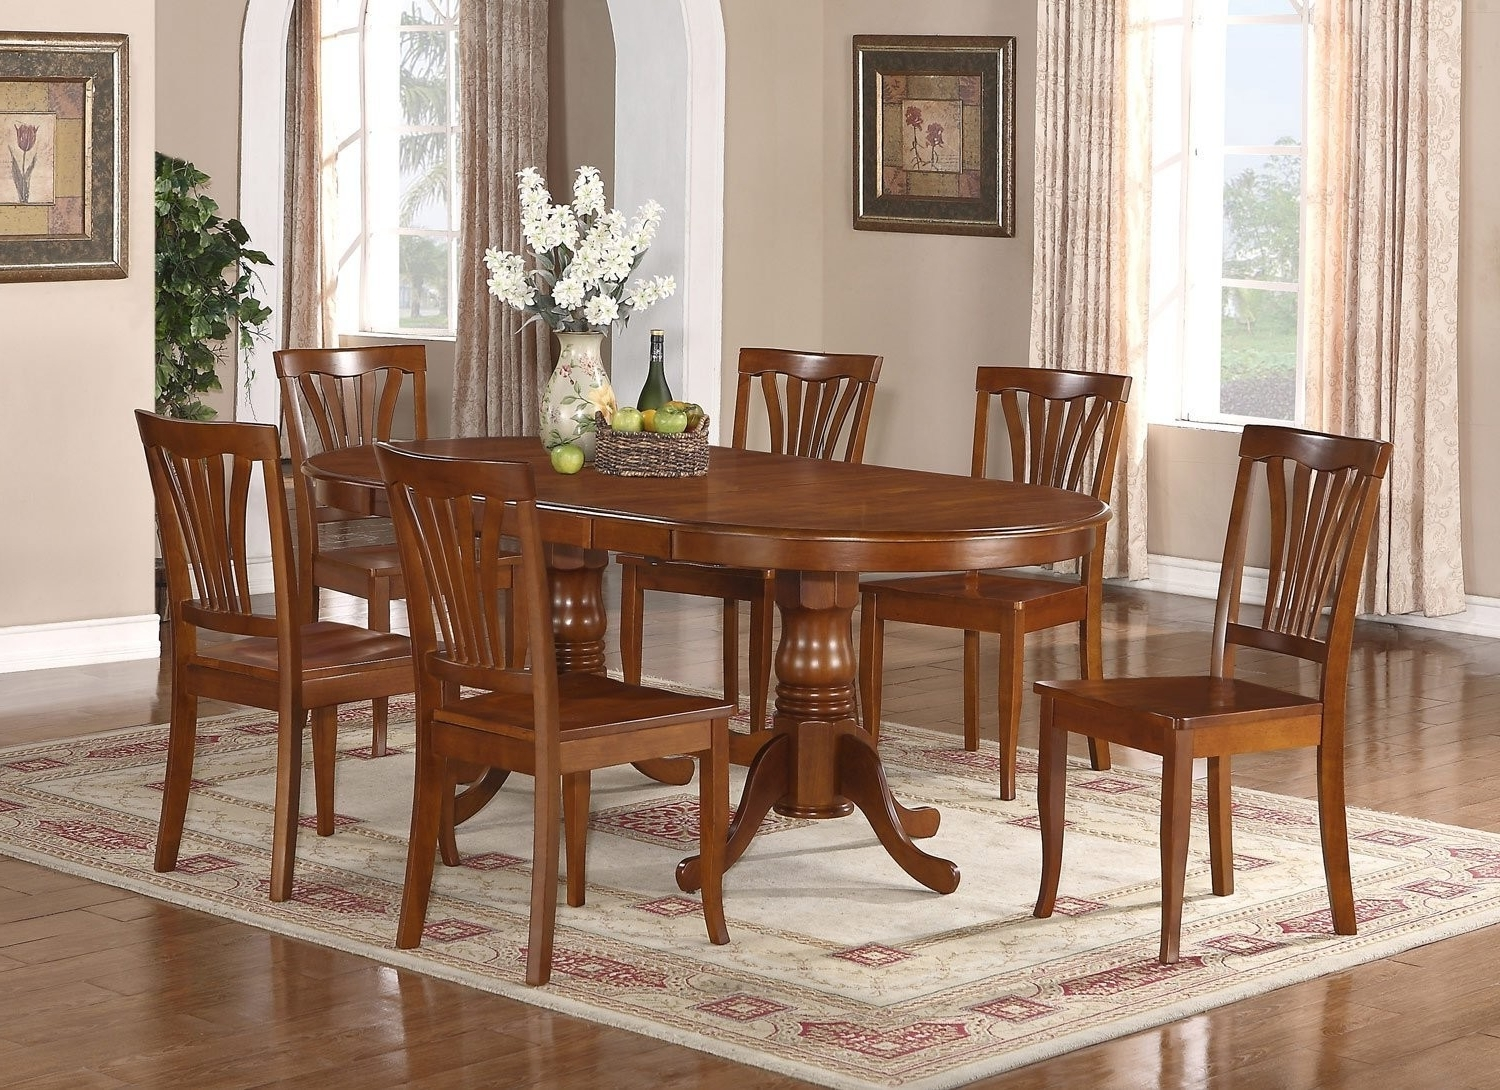 8 Seater Dining Table Sets inside Current Round Dining Room Table Set For 8 Best Of Elegant 8 Seater Dining